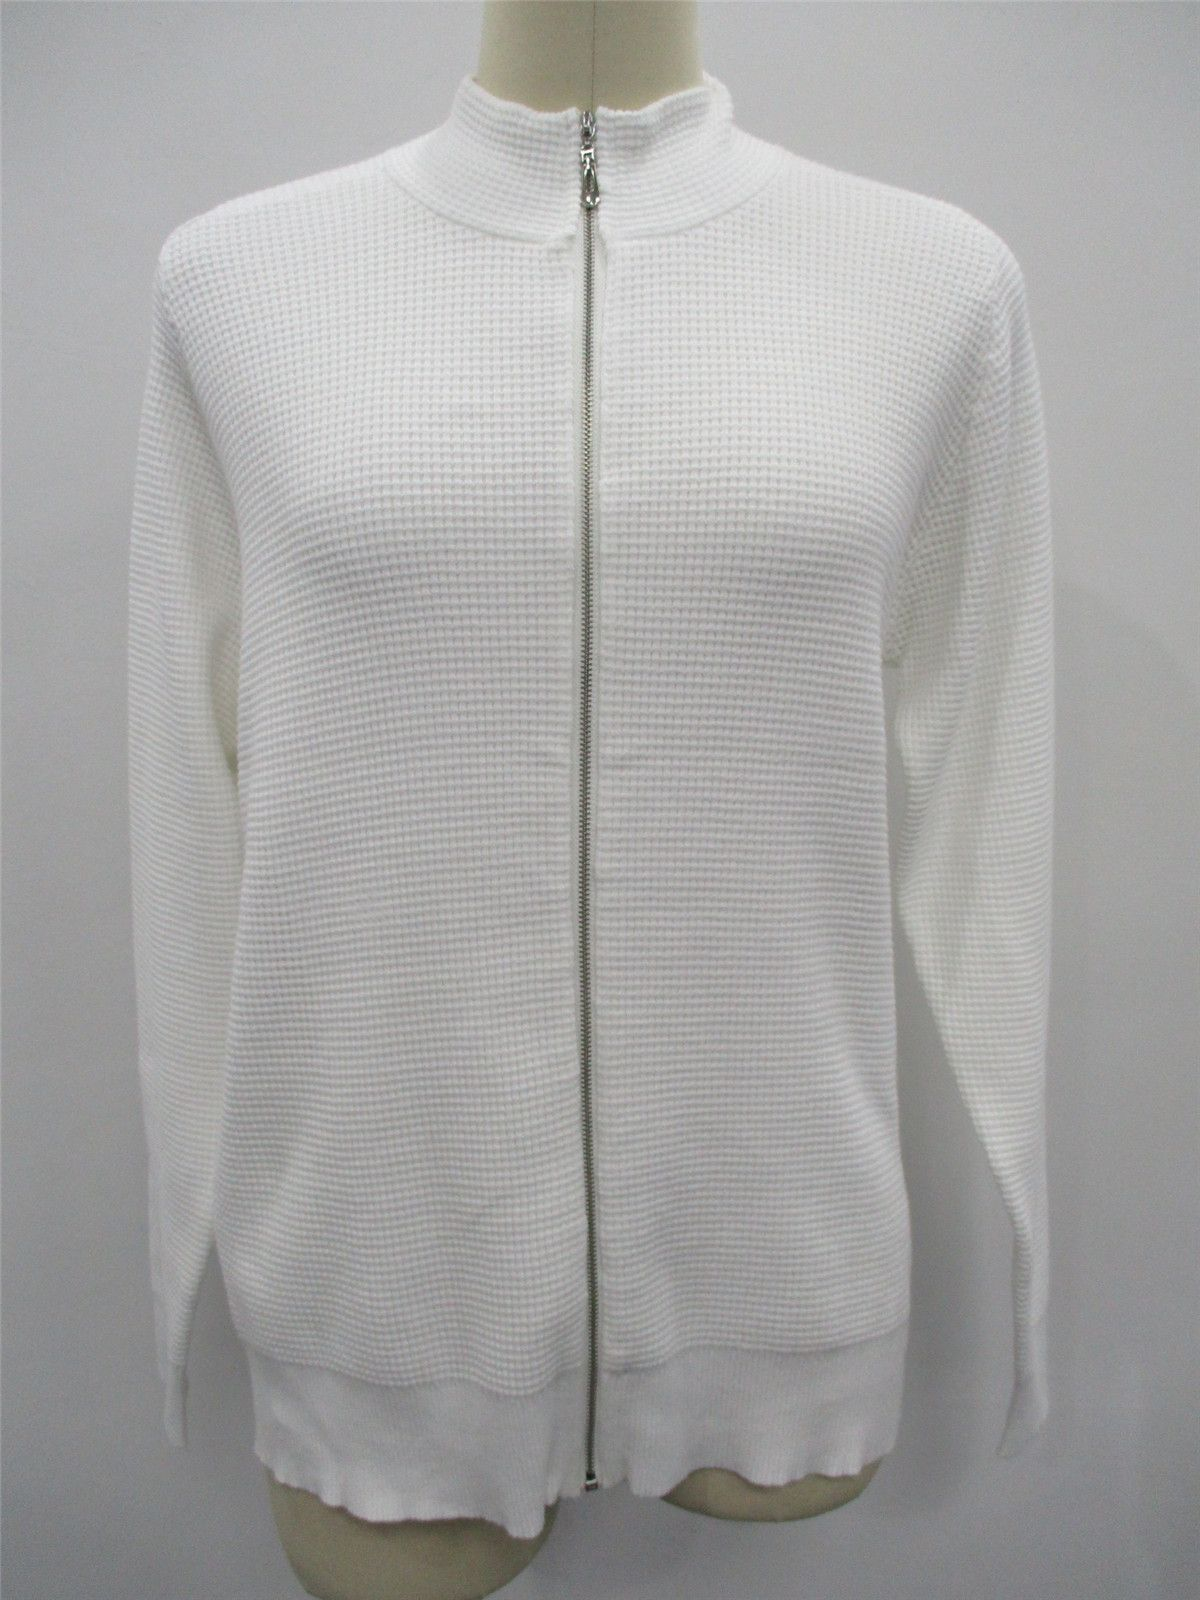 white cardigan knit sweater outwear ladies sweaters | Woolen ...